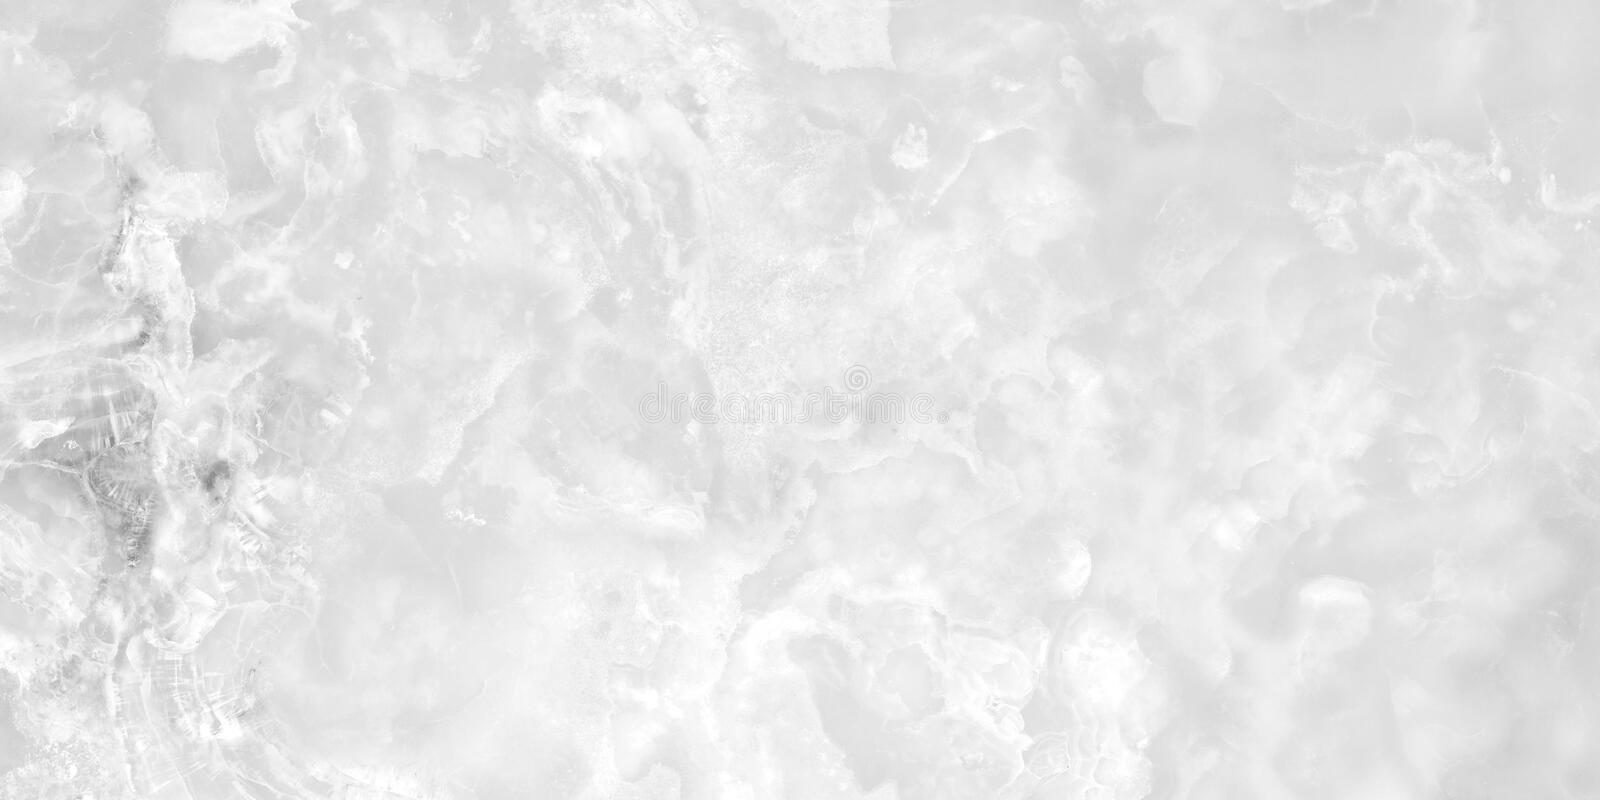 Pattern used for background, interiors, skin tile luxurious design, wallpaper or home floor tiles. Grey marble stone stock photos